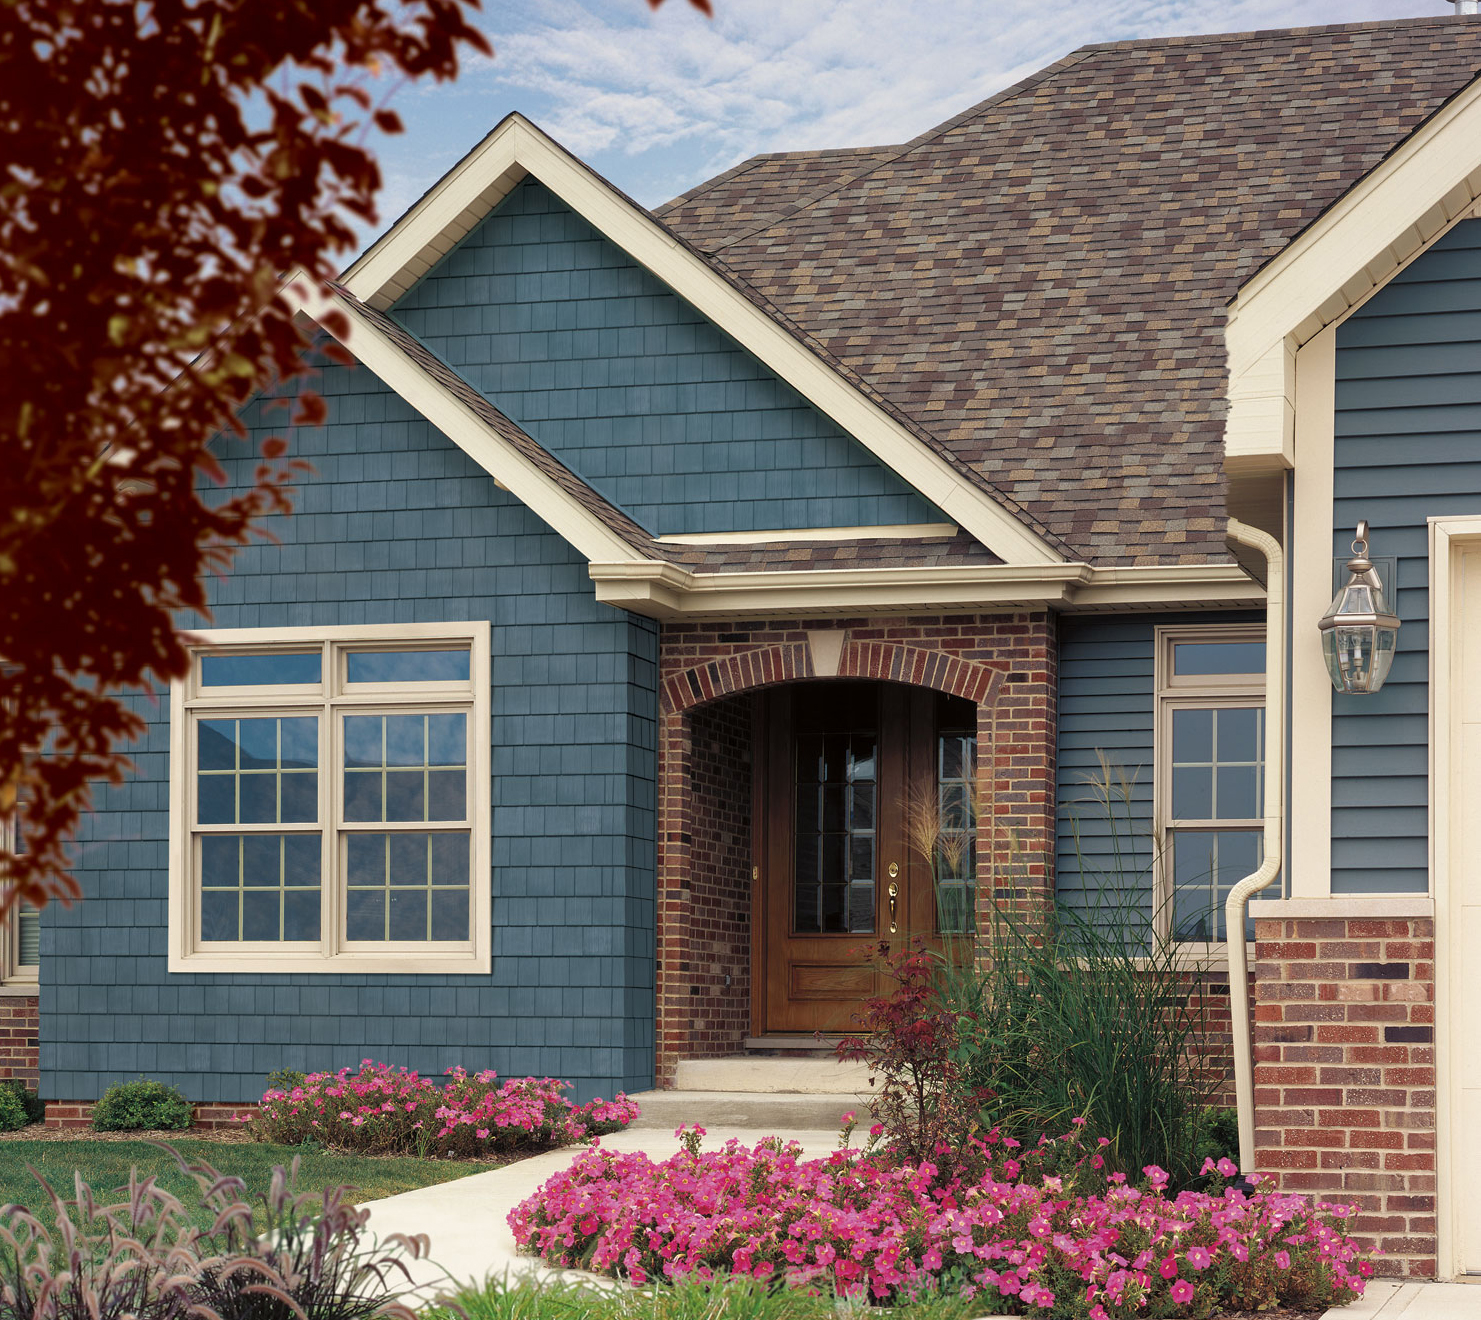 Siding options for homes homesfeed for Wood house siding options